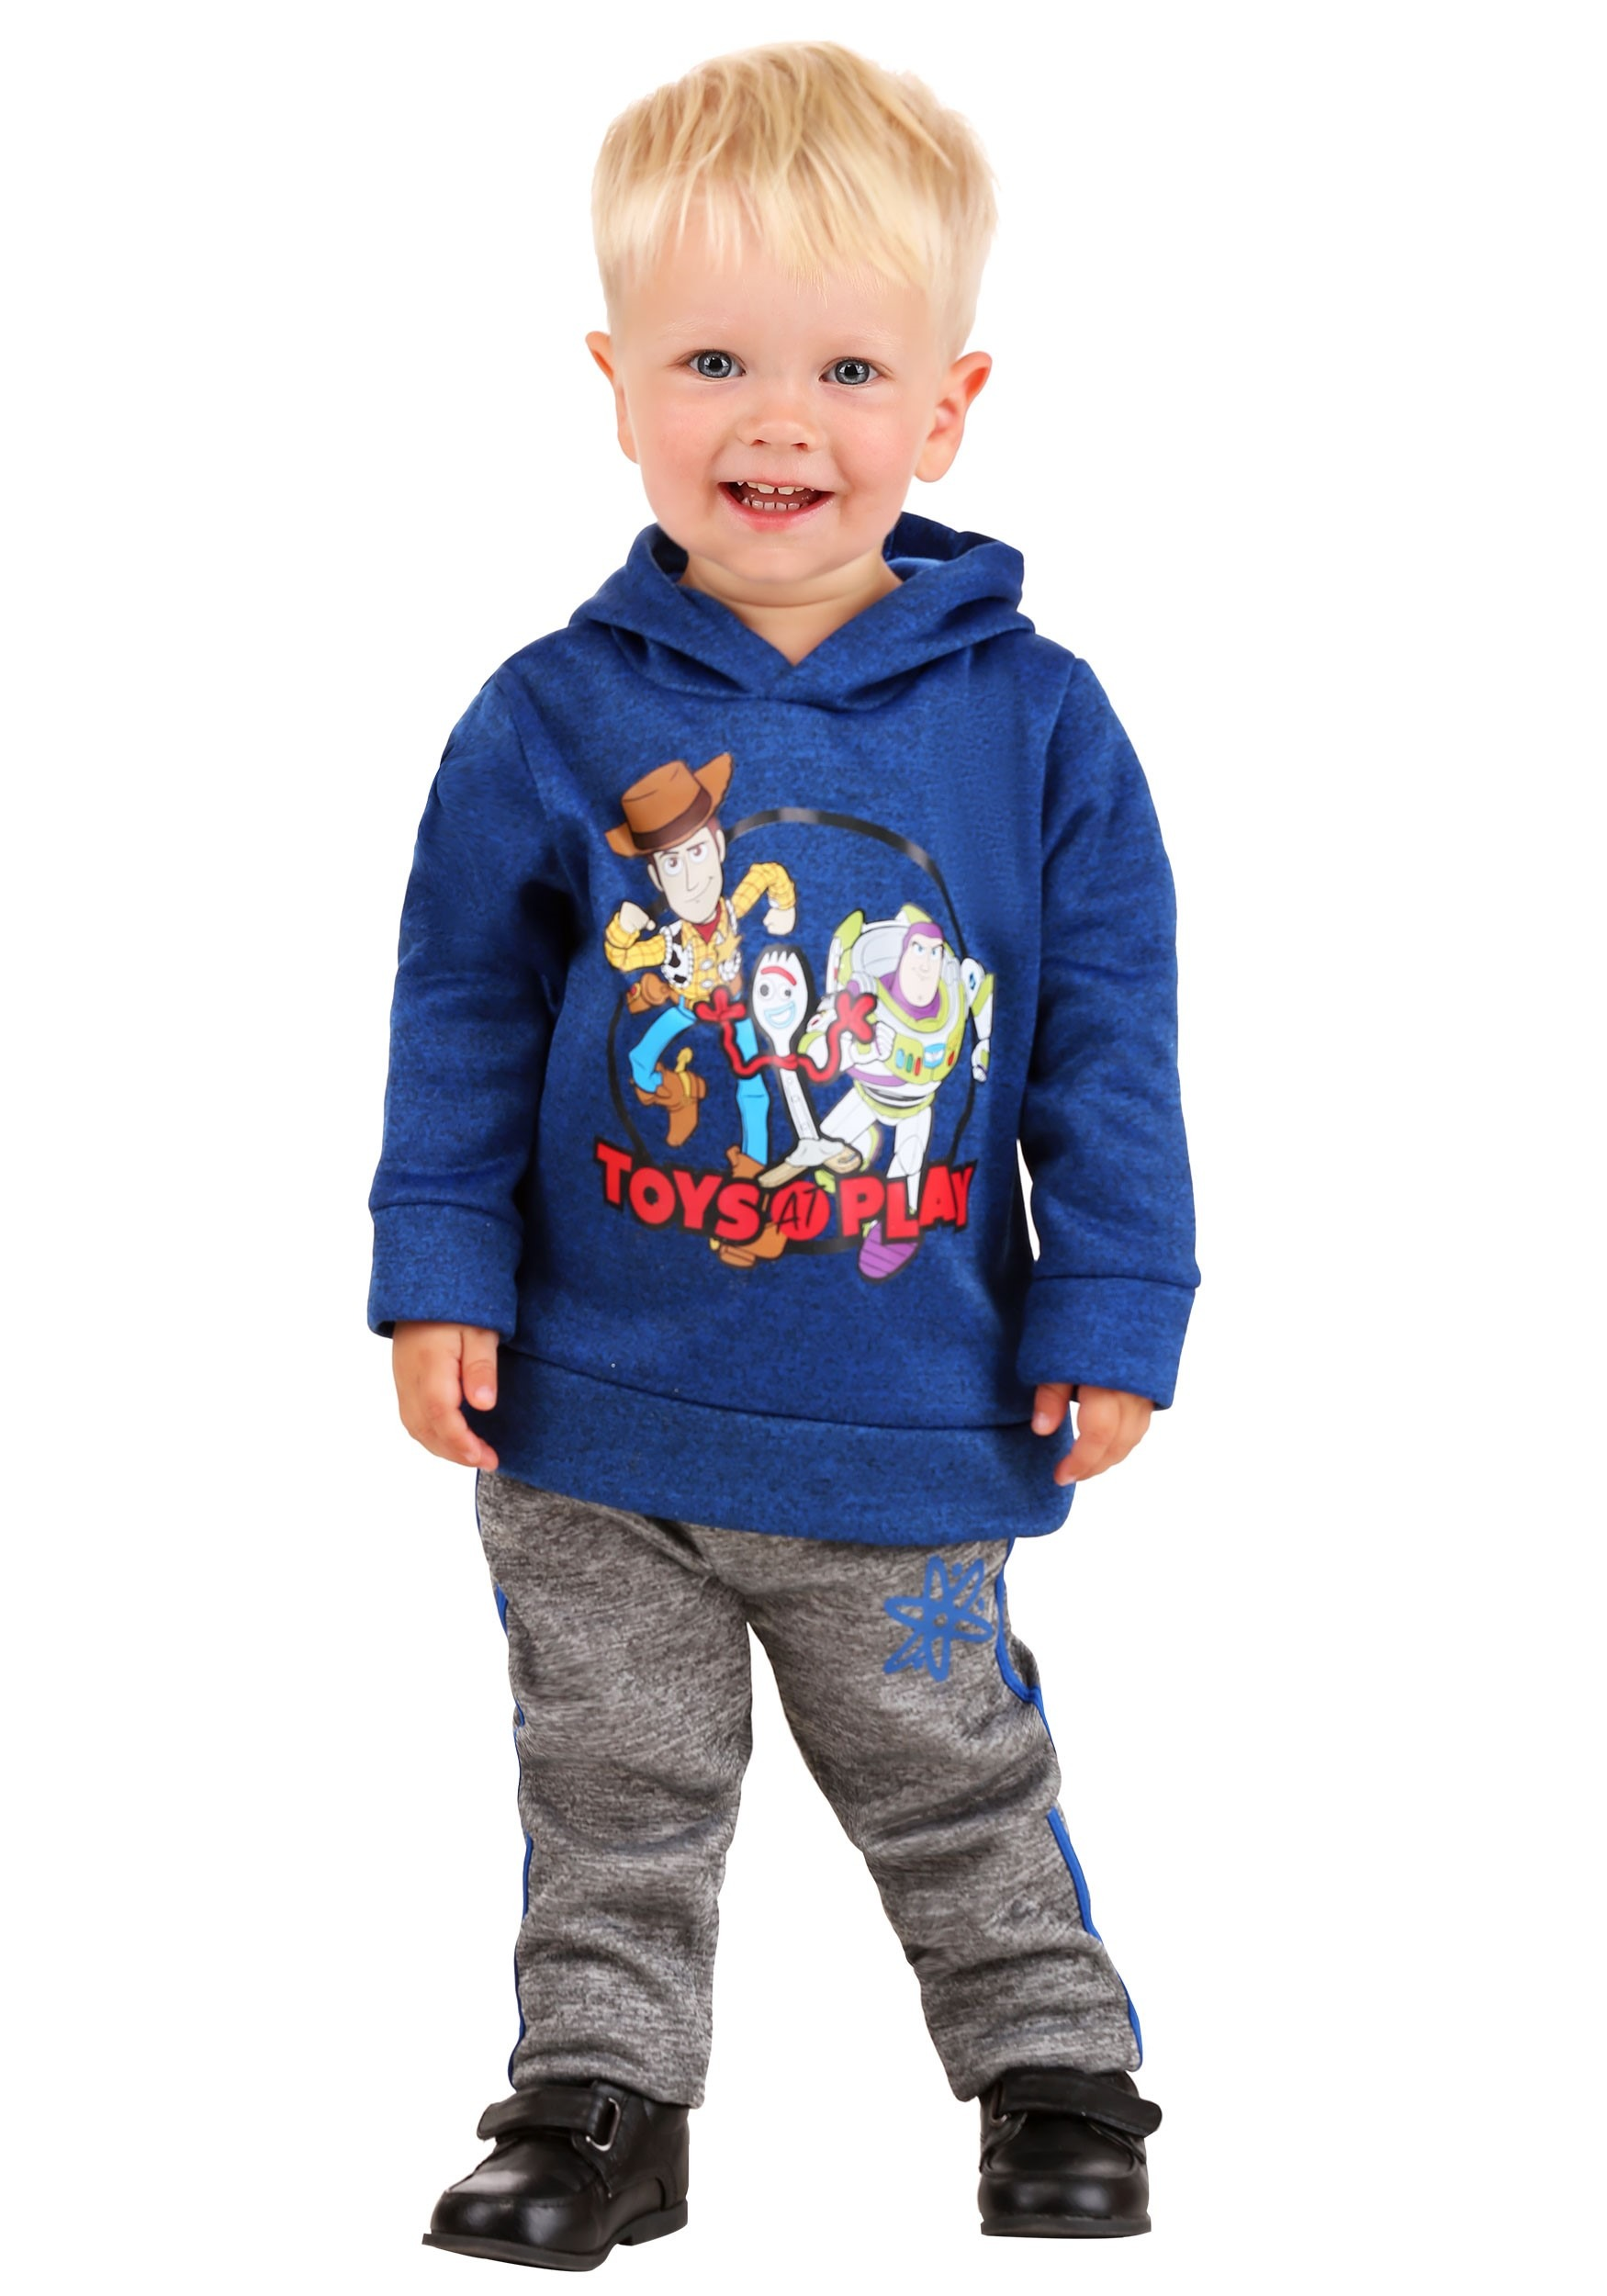 Toy Story Toddler Pants and Hooded Sweatshirt Set